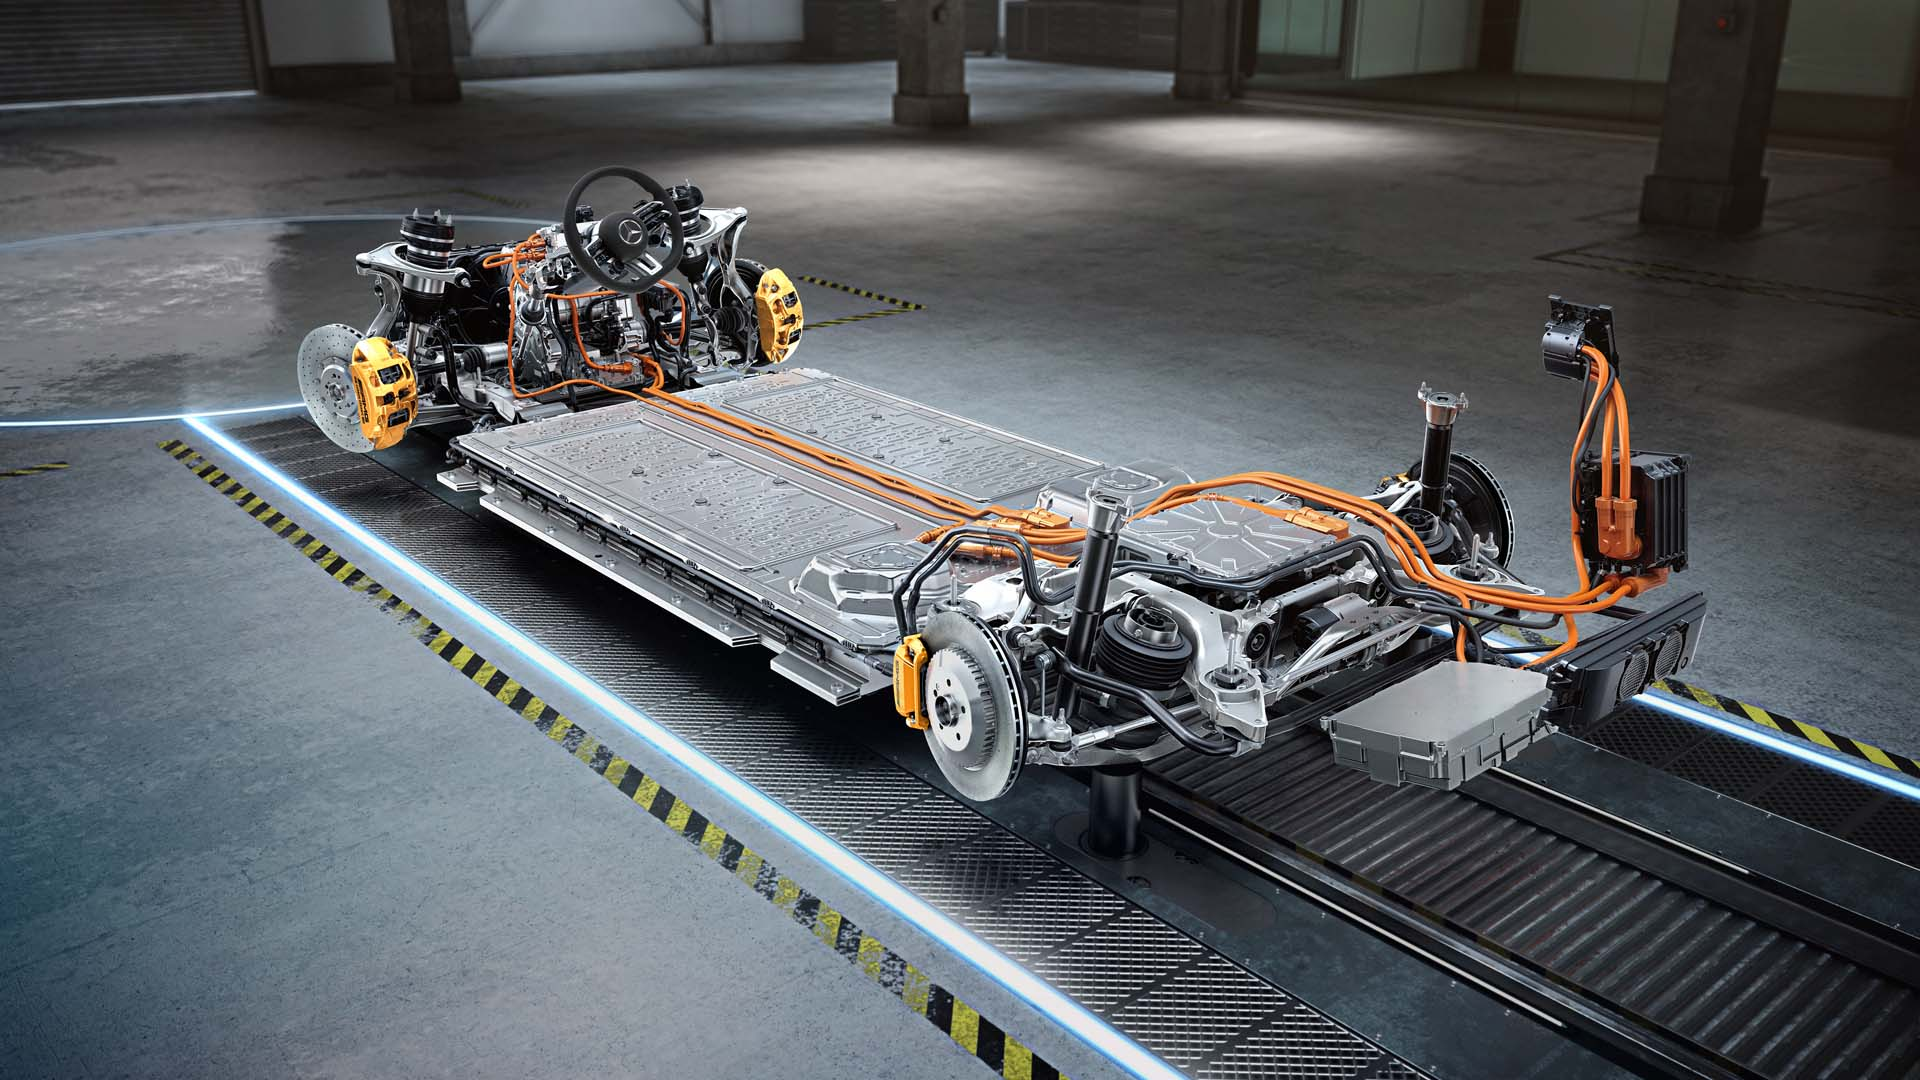 Mercedes-AMG plug-in hybrids will get F1 battery tech, 2-speed gearbox and e-motor at rear